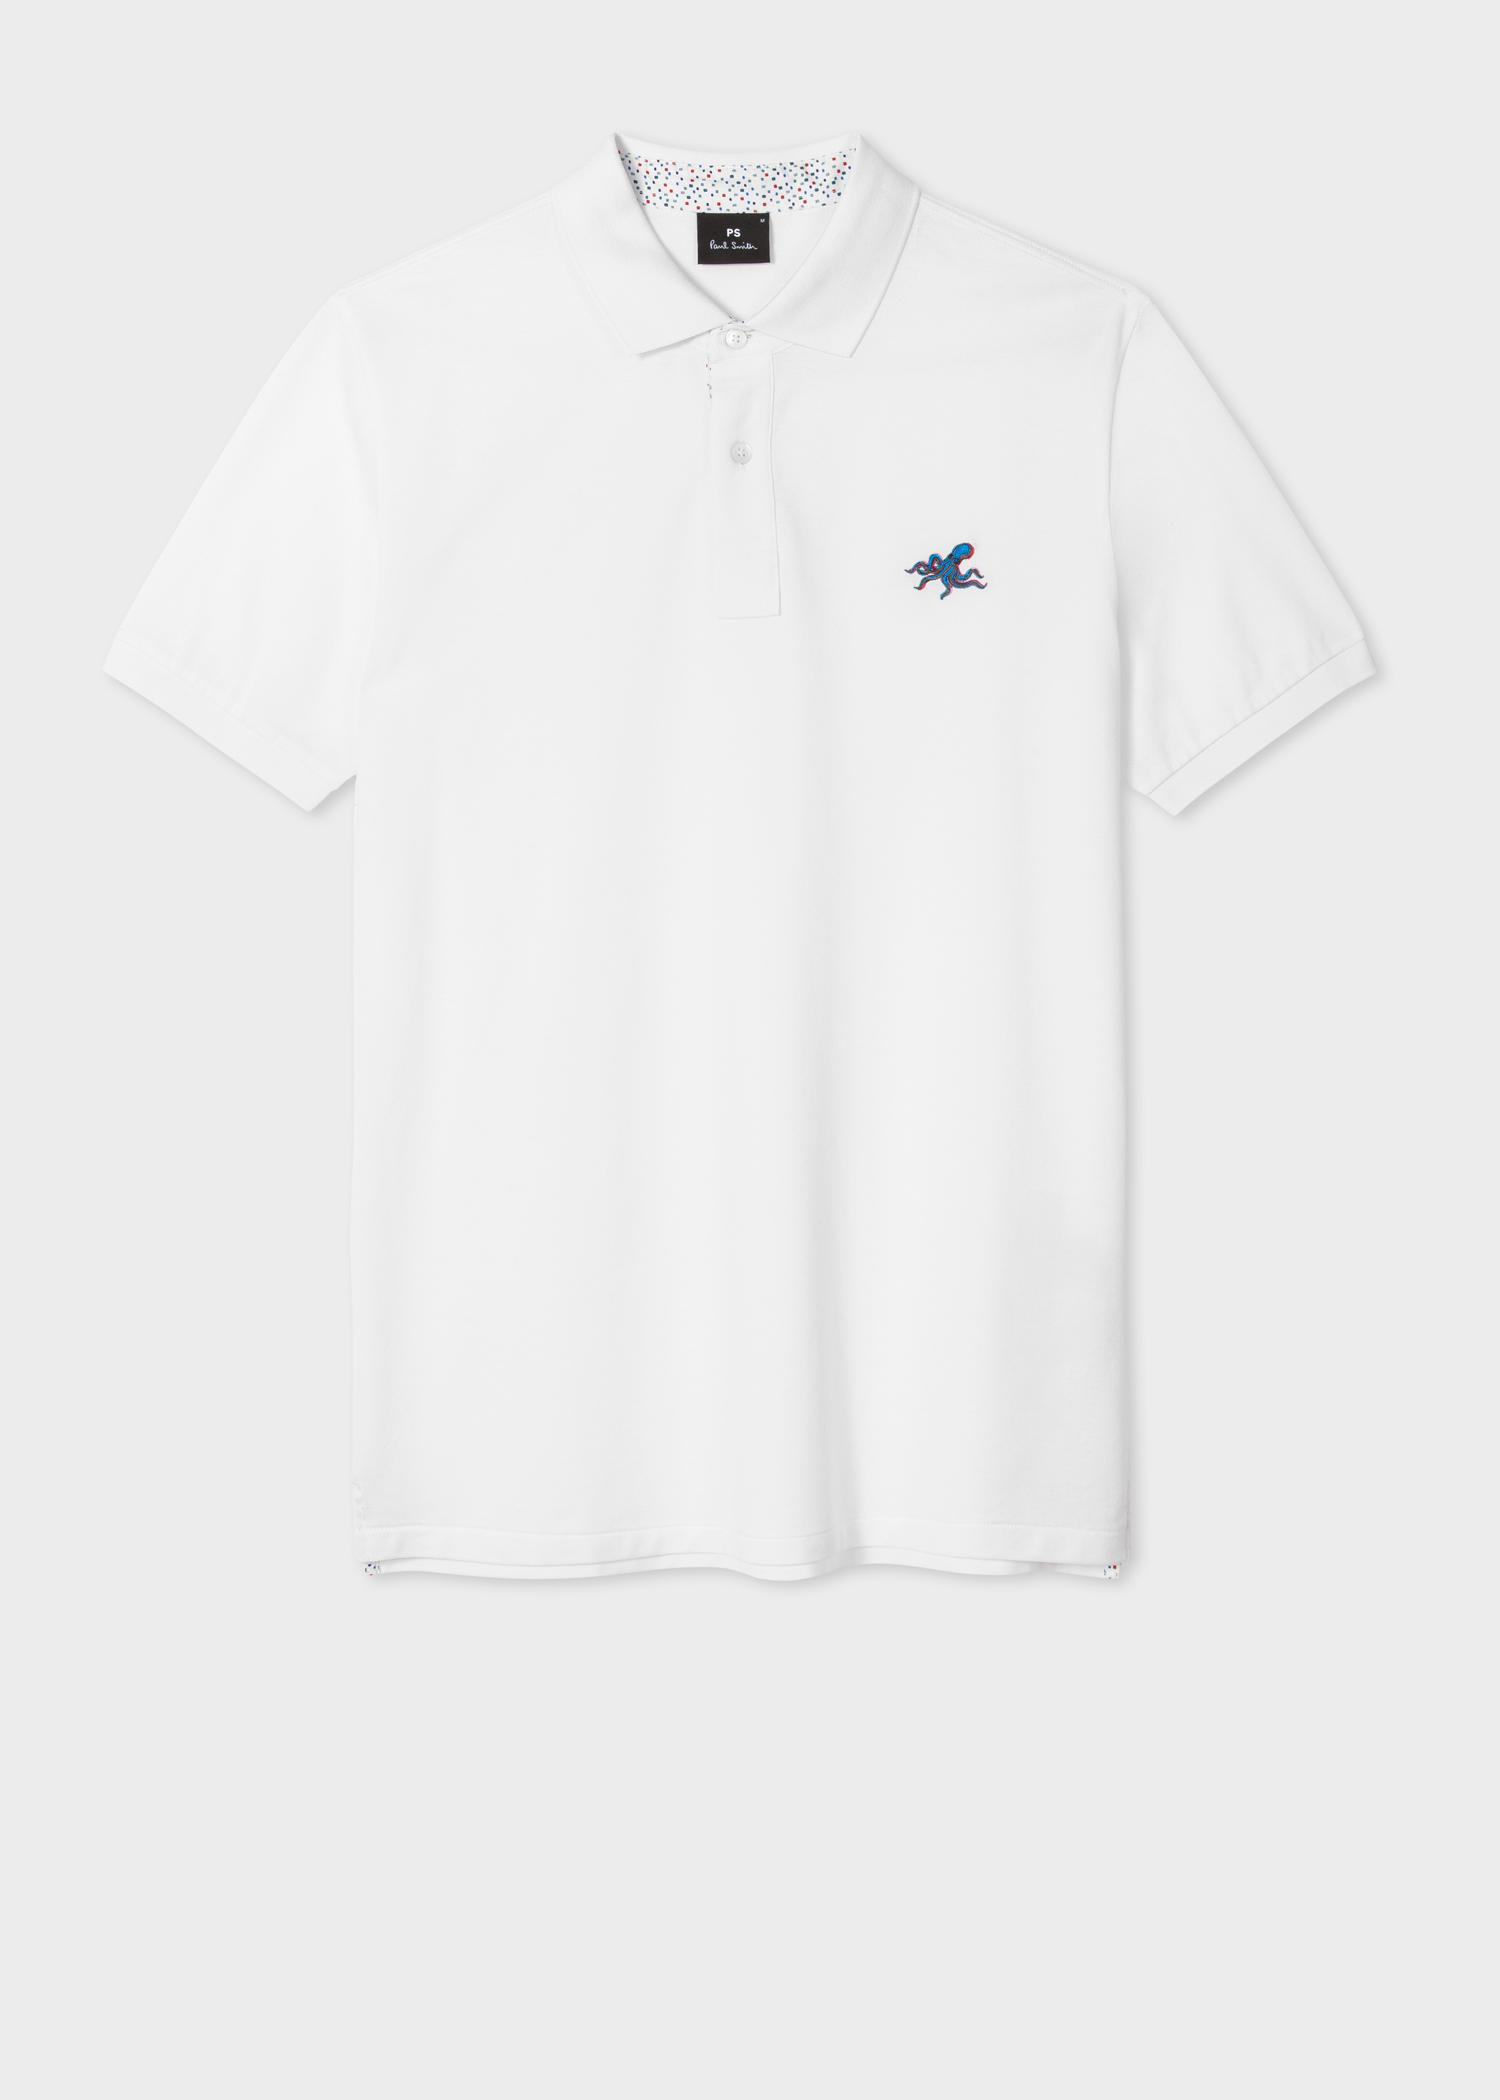 White Embroidered 'Octopus' Polo Shirt